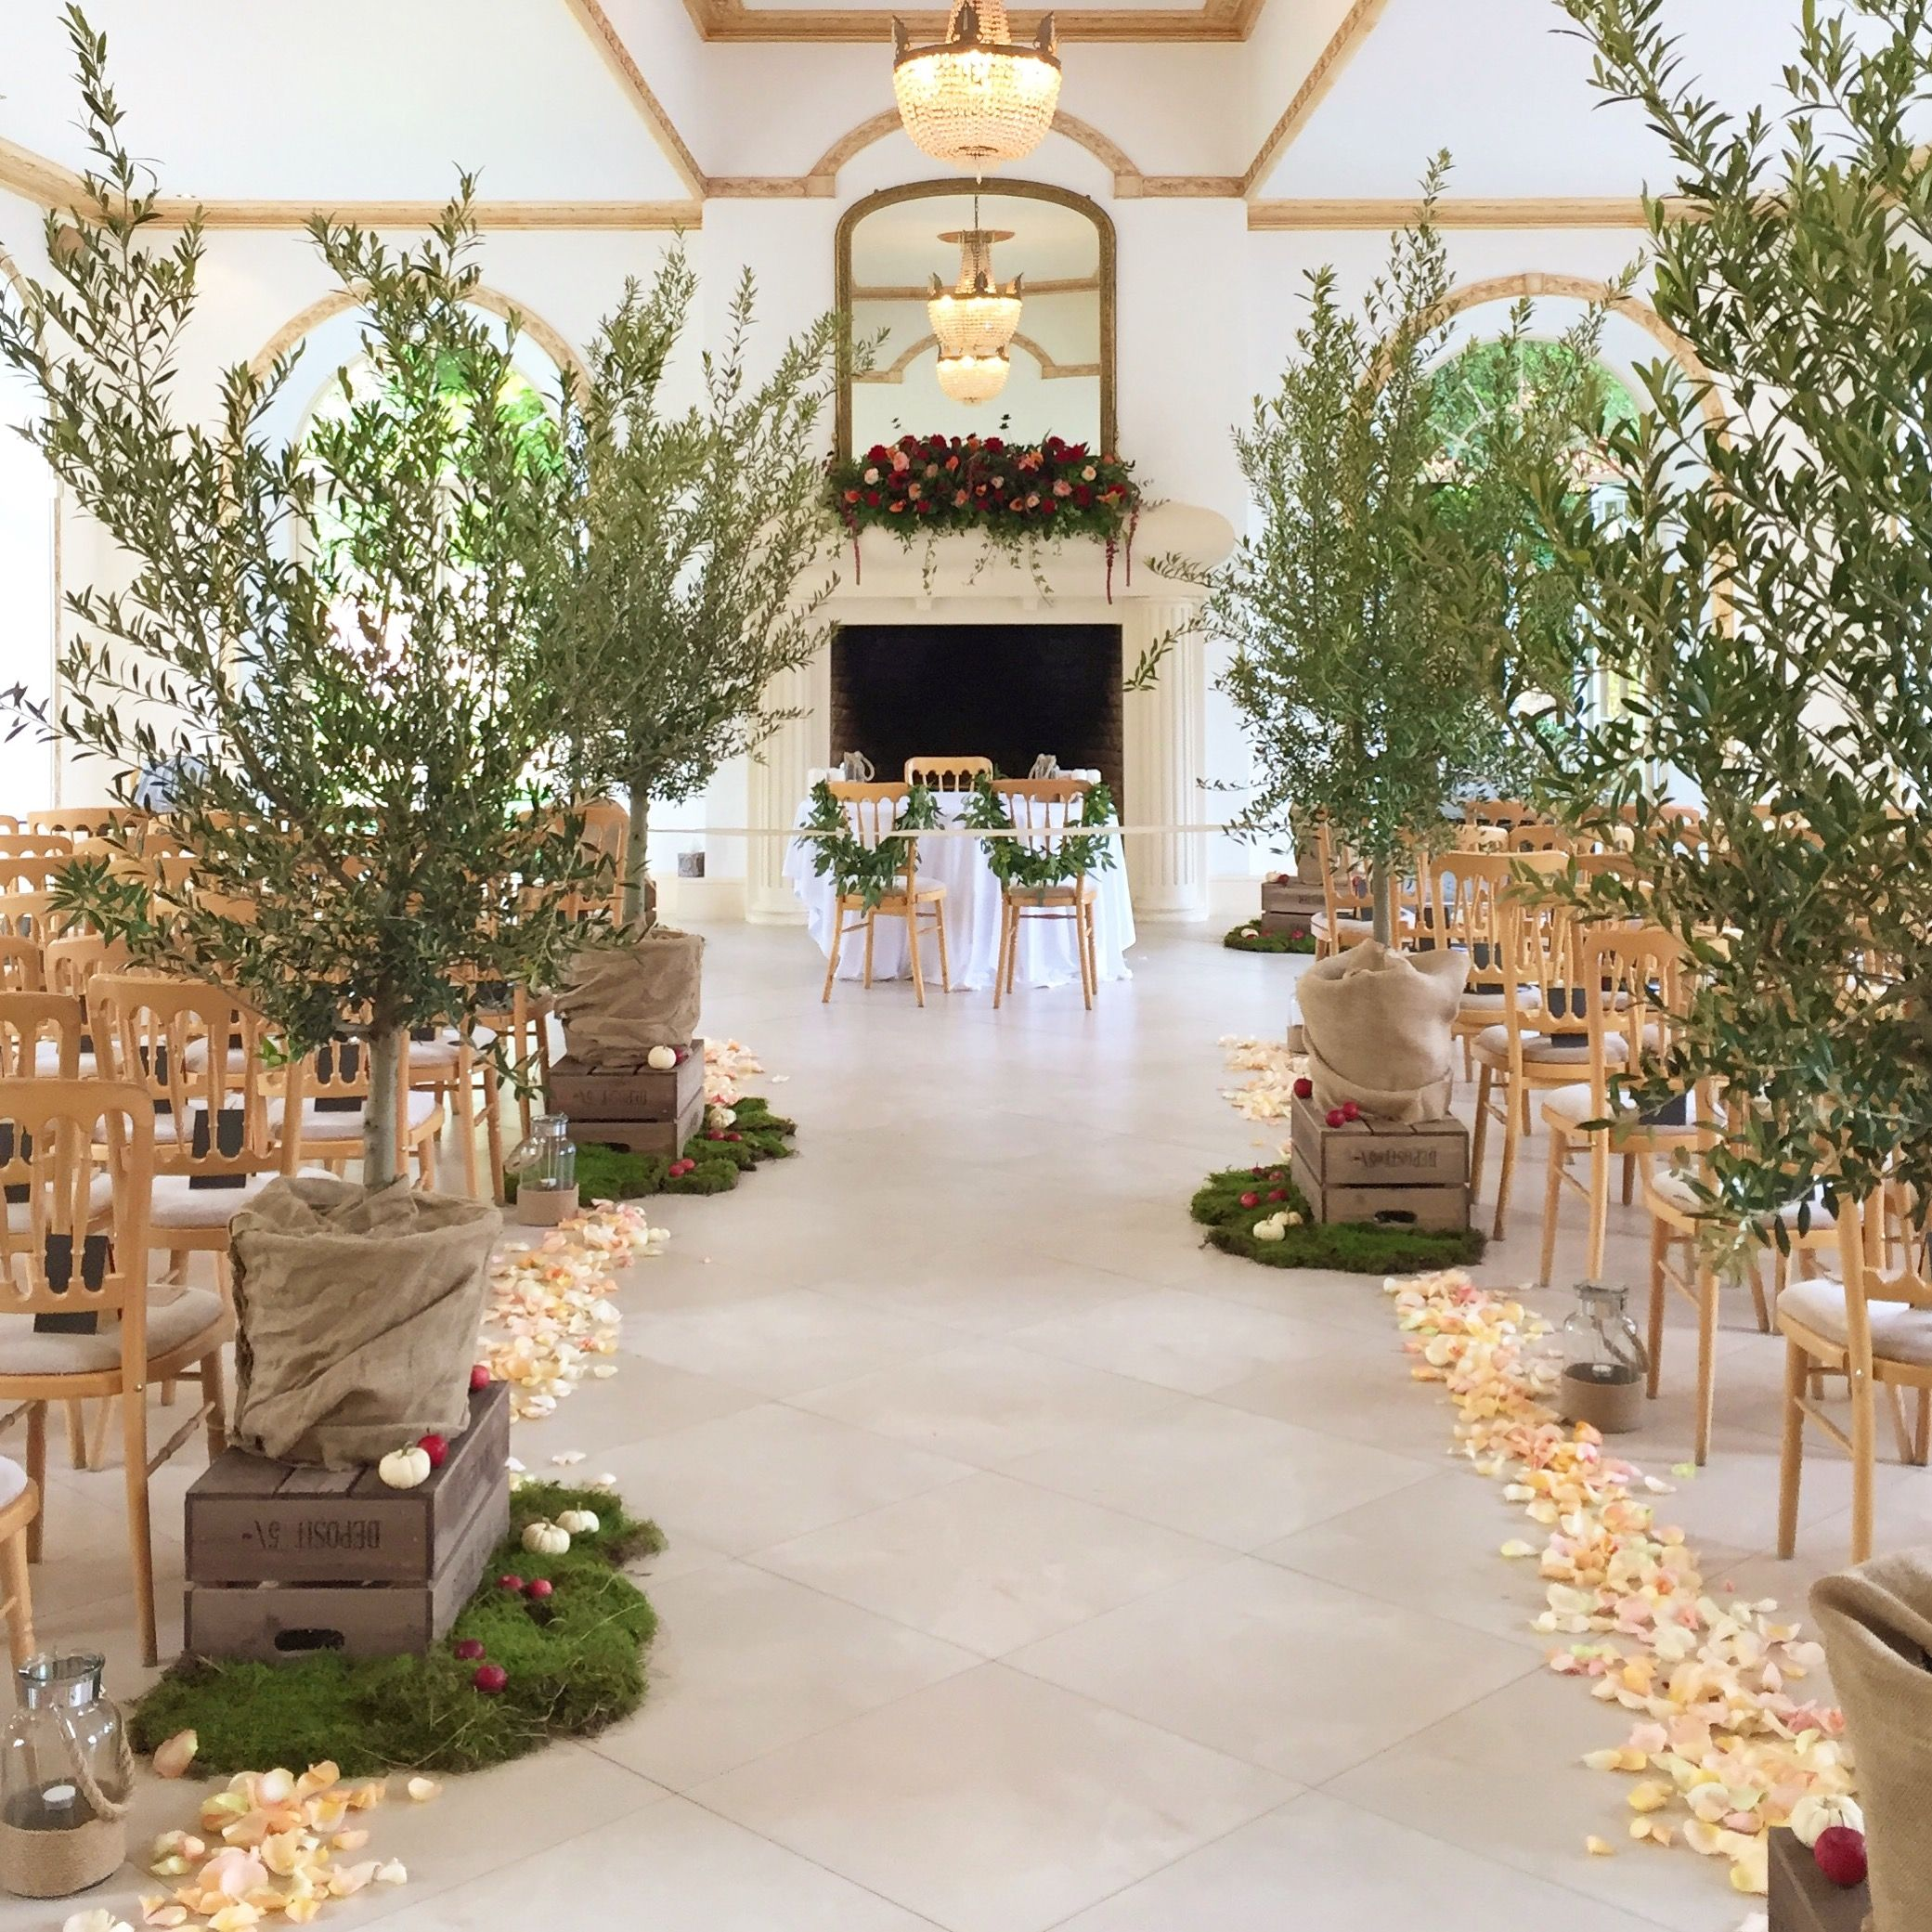 Stunning Autumn Wedding Aisle The Vine Room Northbrook Park Fl Design Created By